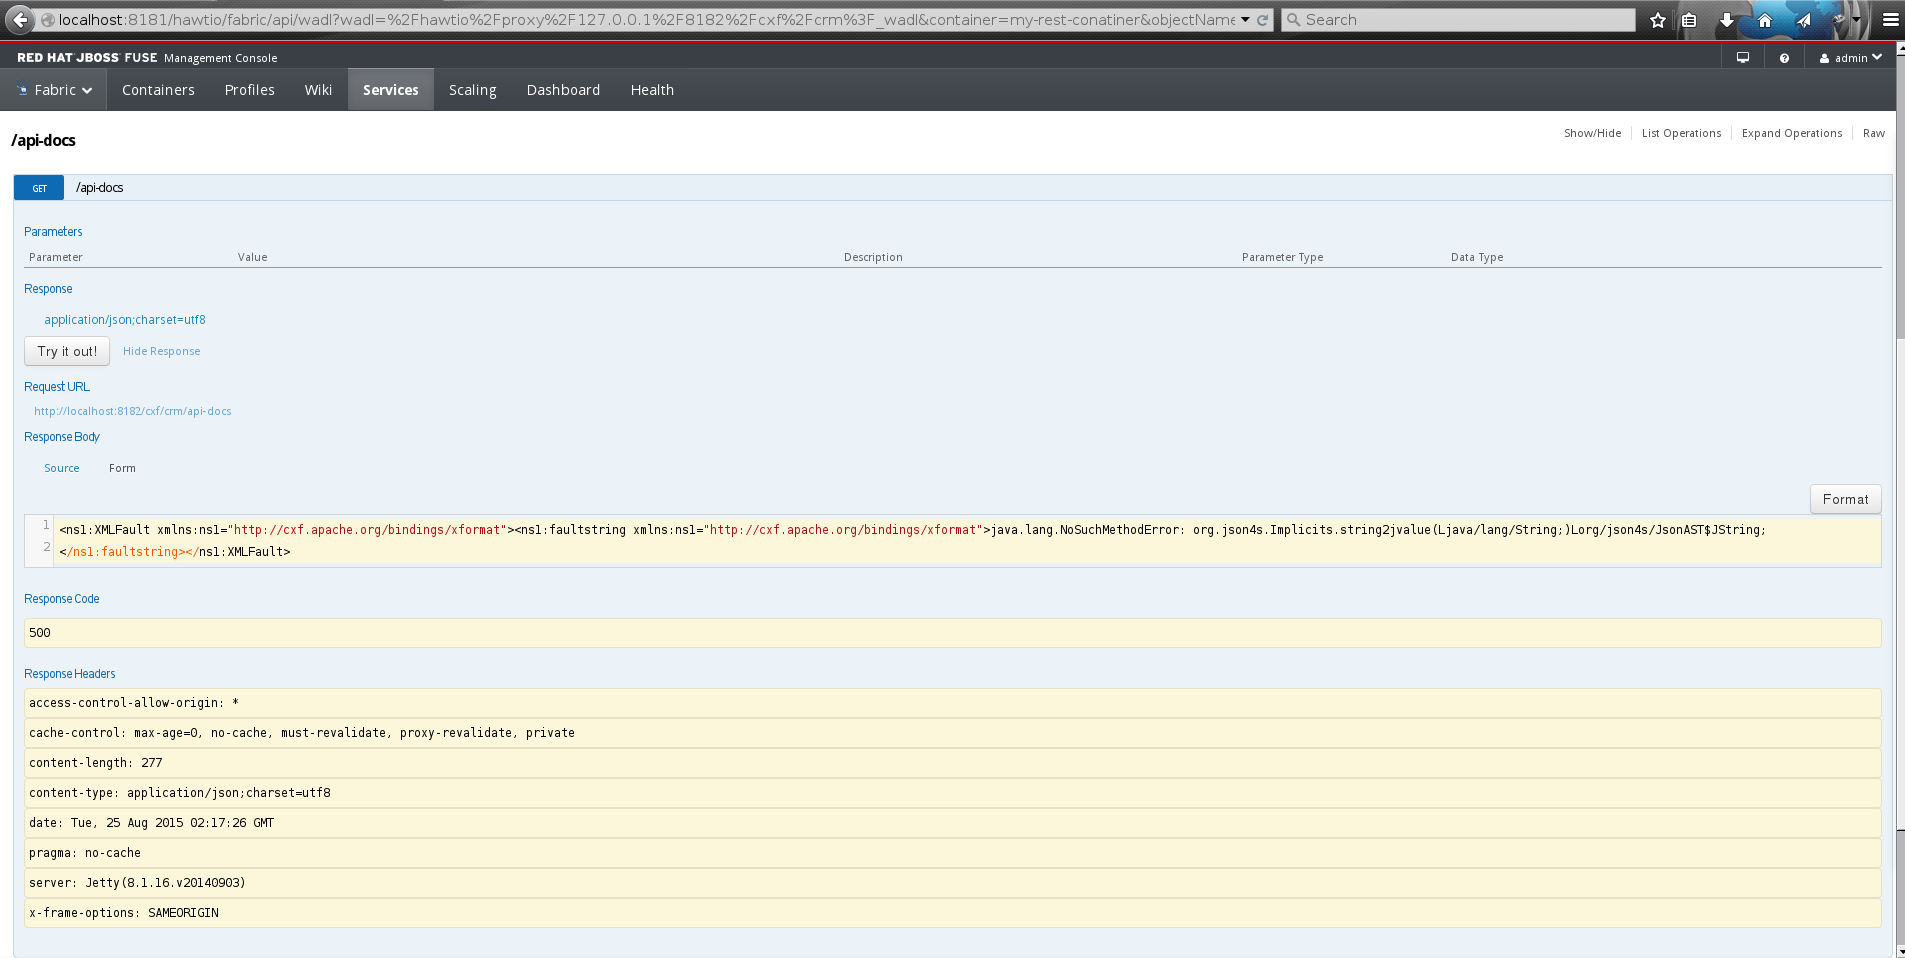 Entesb 3302 nosuchmethoderror when accessing swagger api docs for see the screenshot image malvernweather Gallery